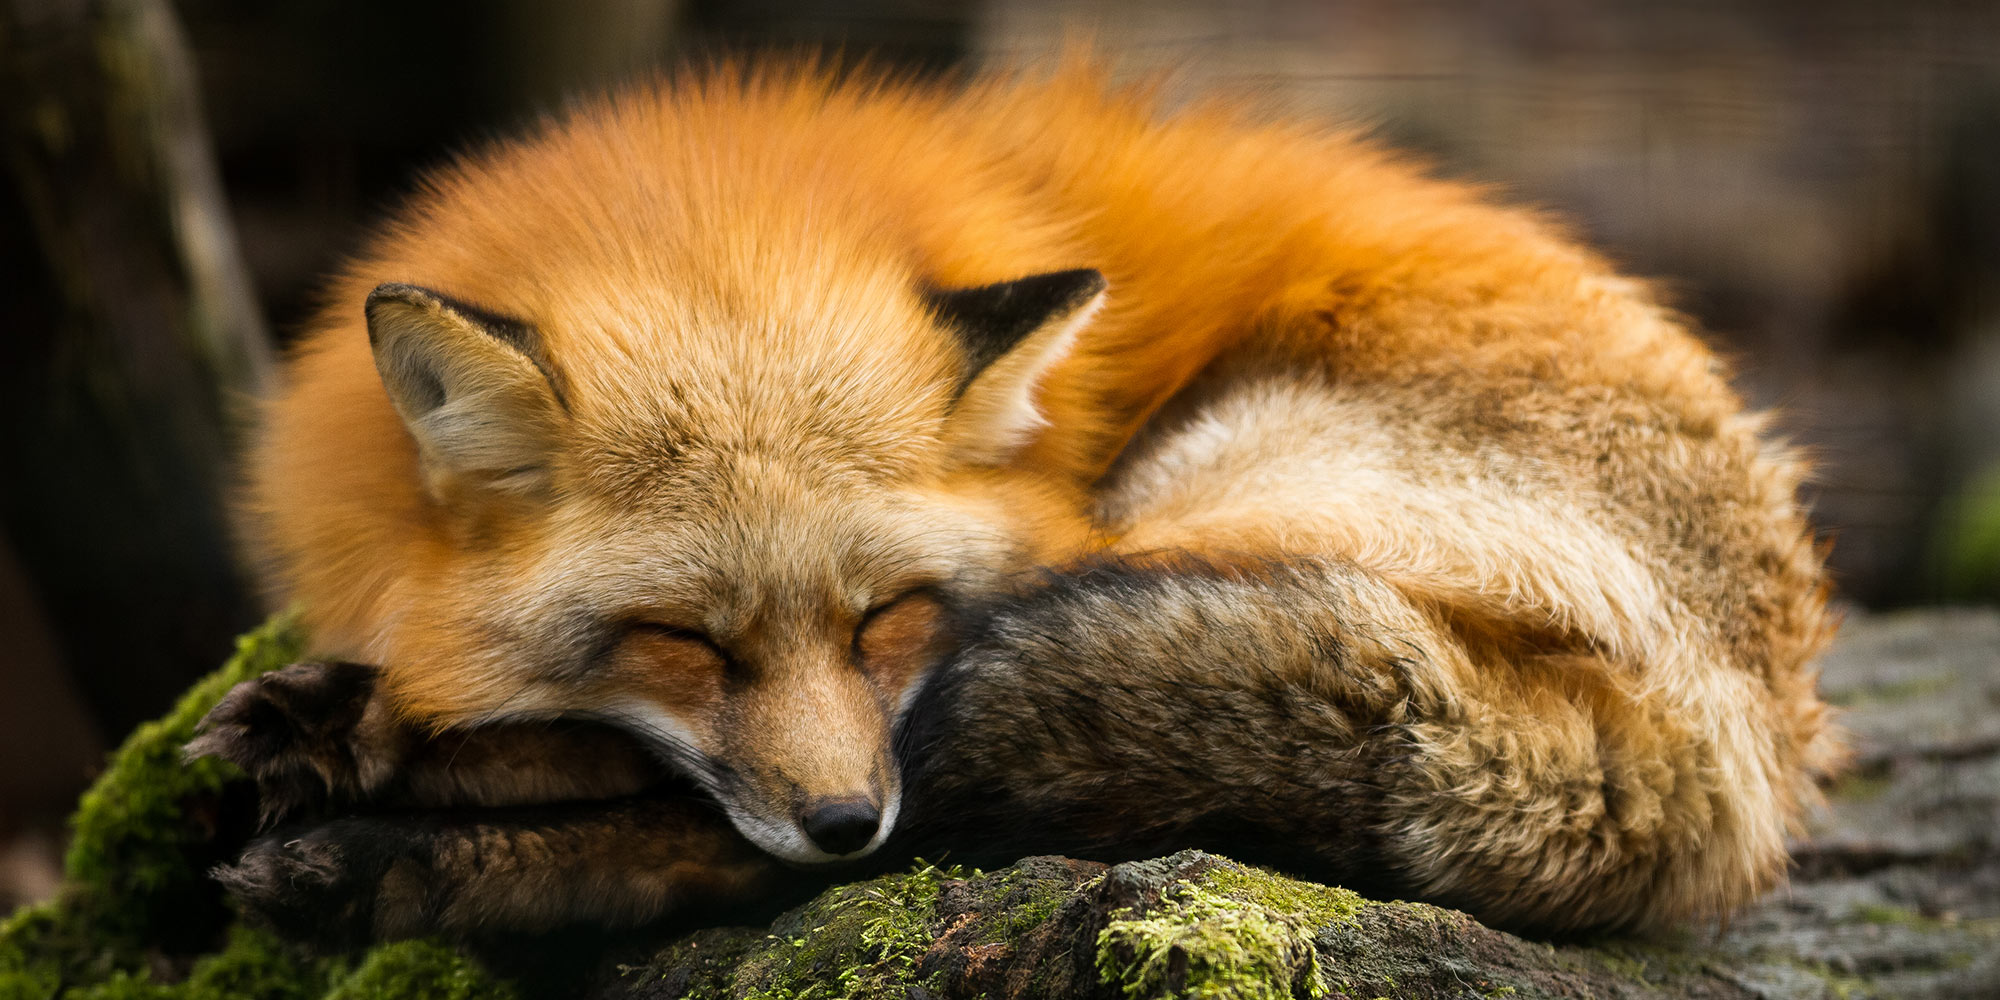 EQ Graphics | Photography of a Fox Sleeping on a Log in the Forest